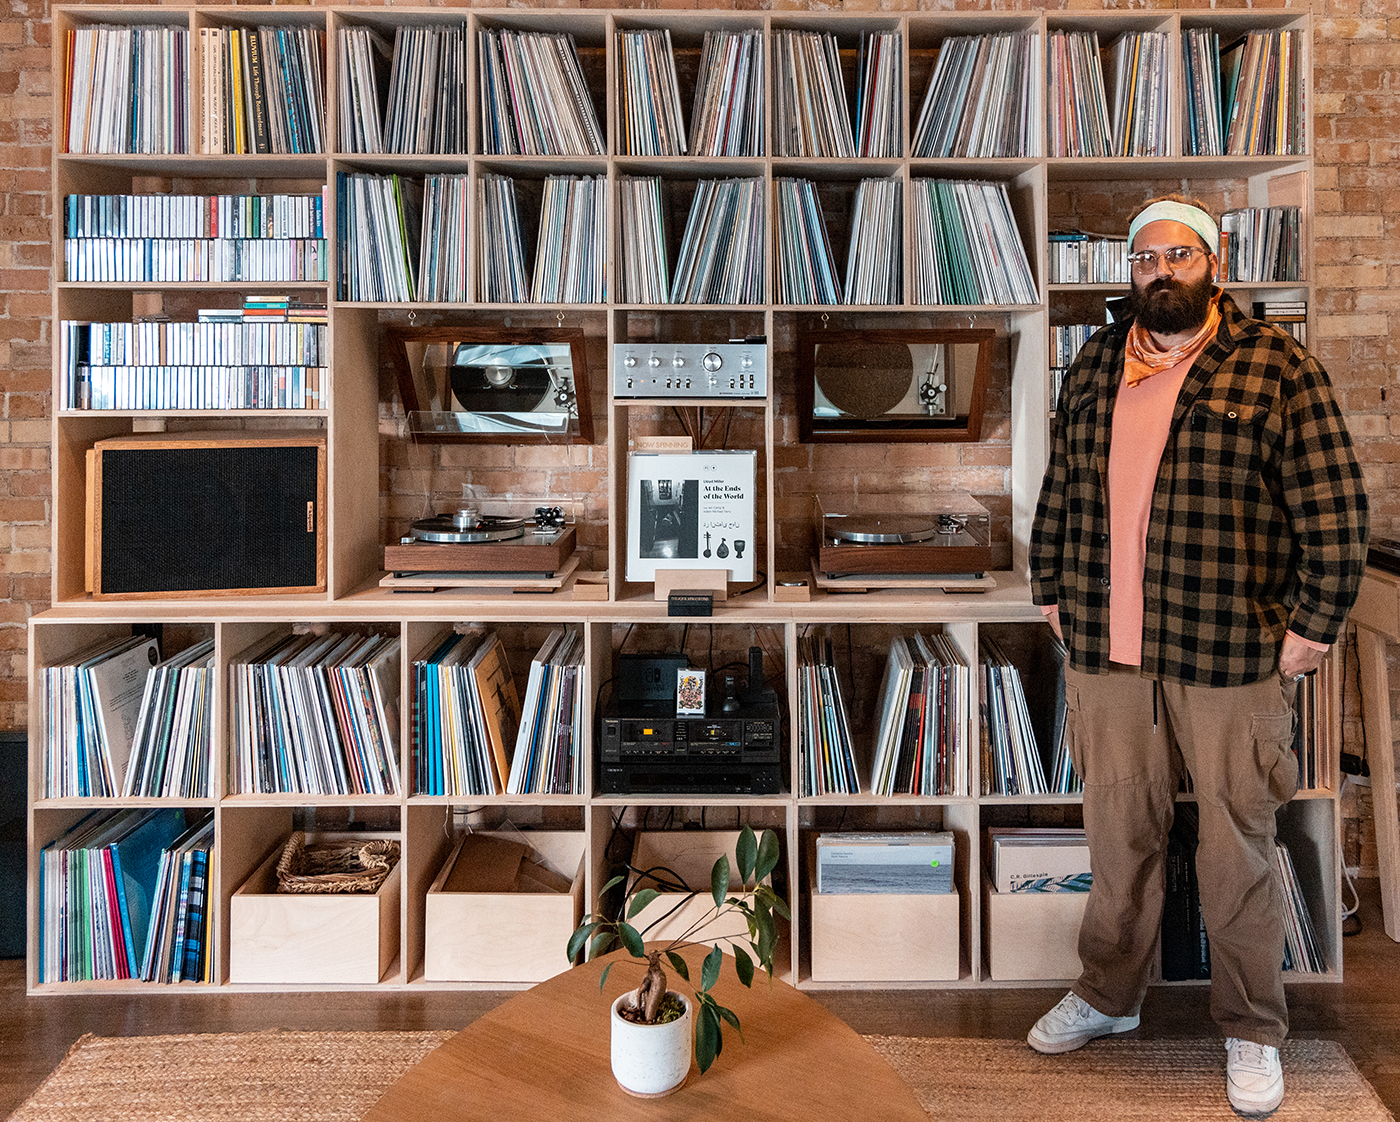 With Peasantries + Pleasantries, Parker Yates offers a highly curated selection of records specializing in minimalism, new age and environmental sounds.